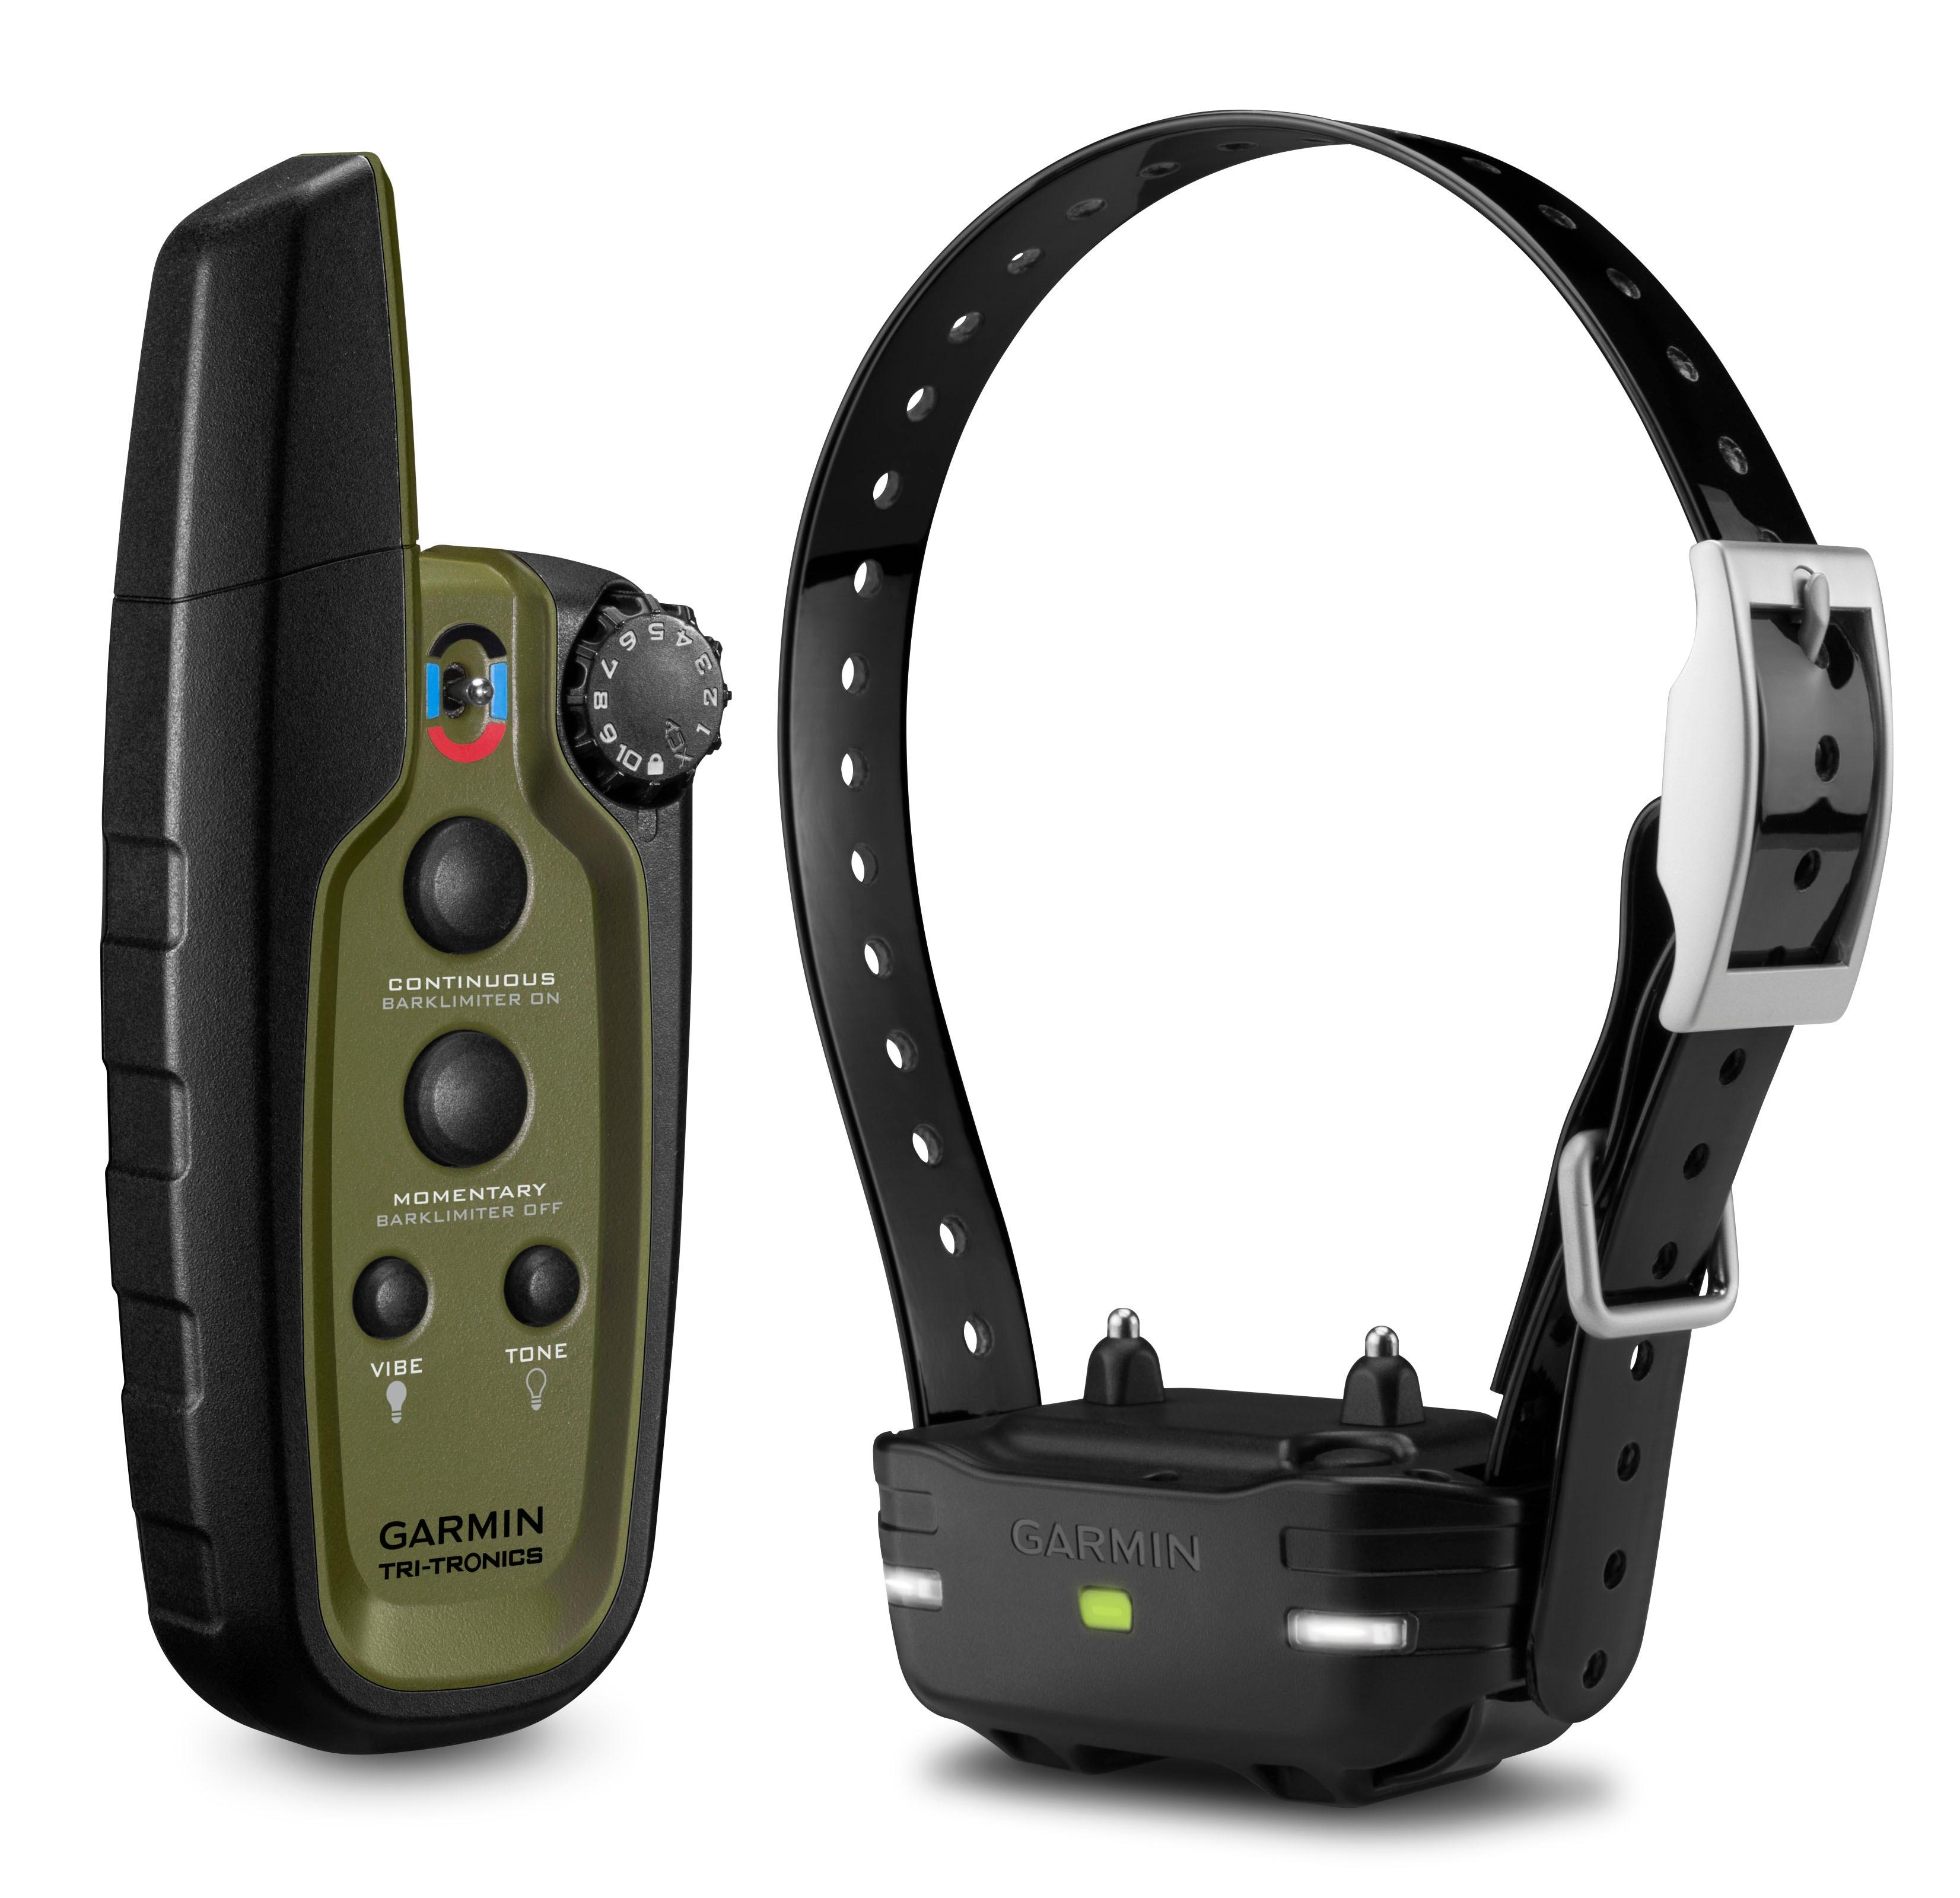 Amazon.com: Garmin Sport PRO Bundle Dog Training Device